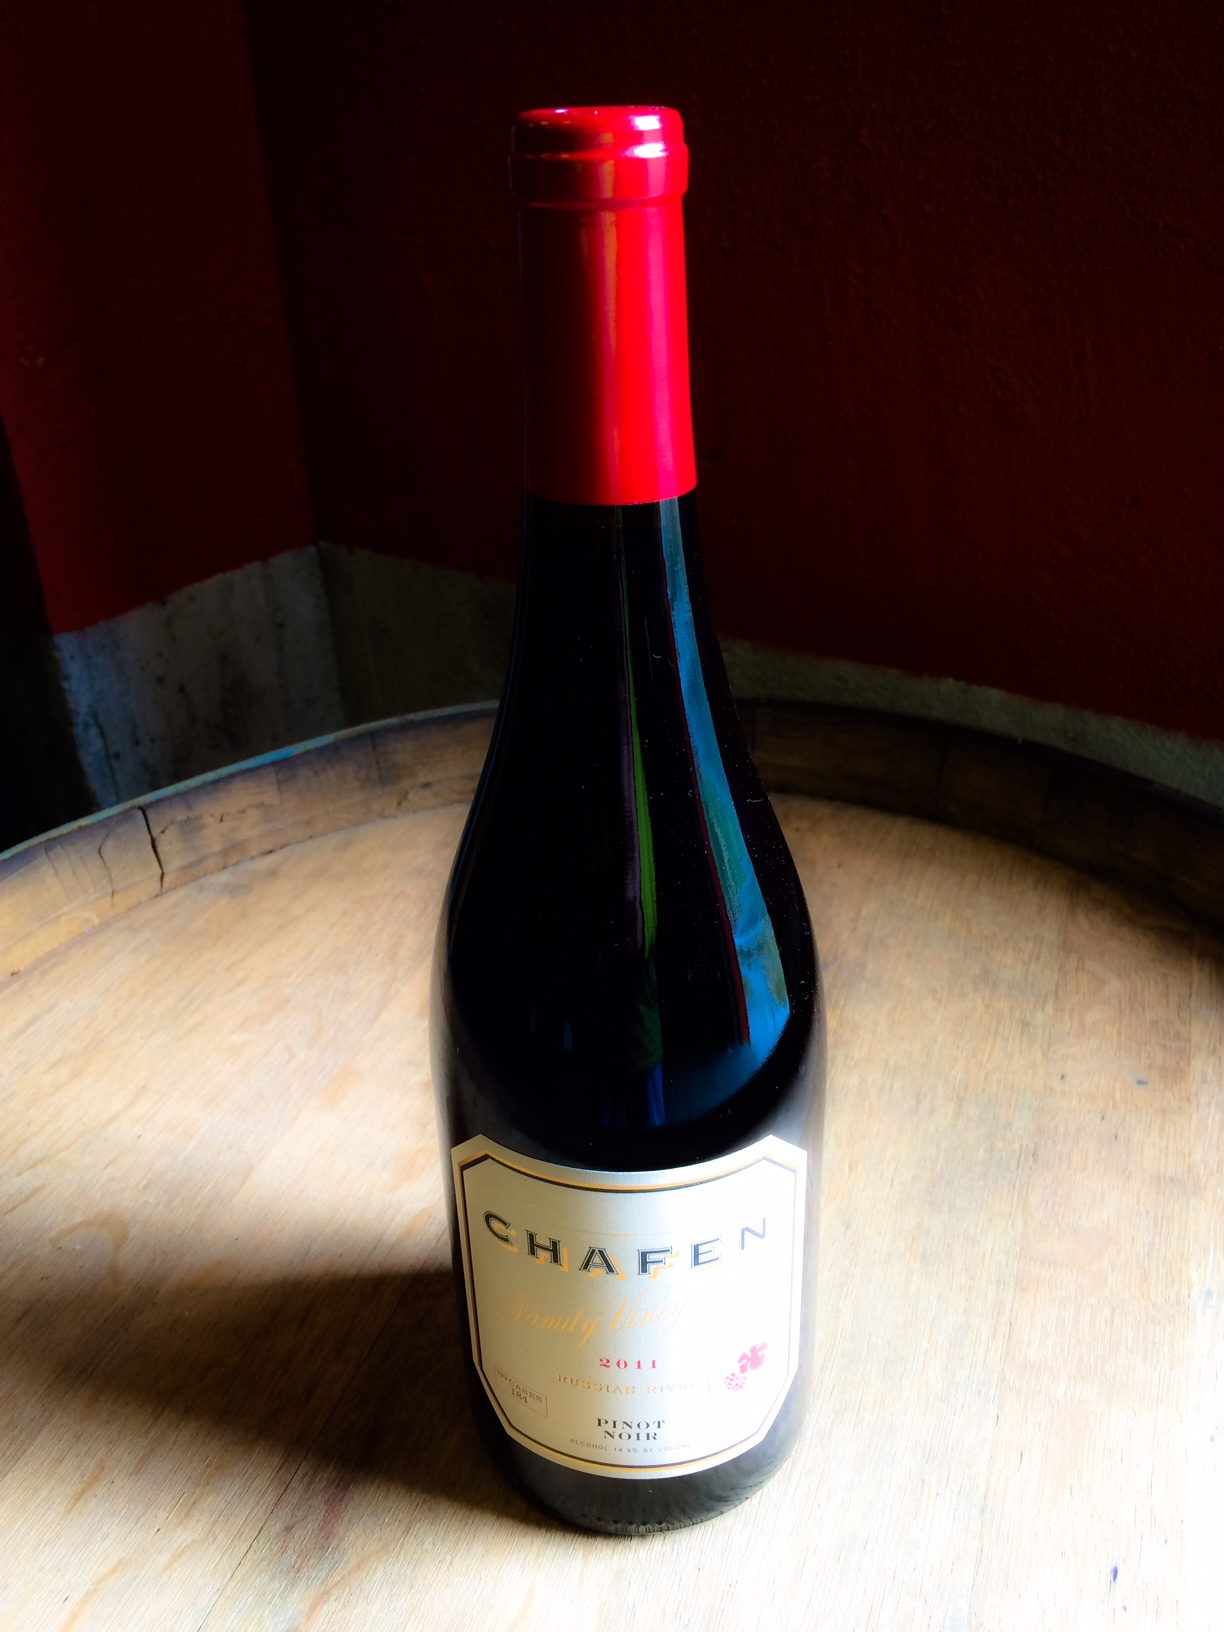 2014 Chafen Family Russian River Pinot Noir MAIN